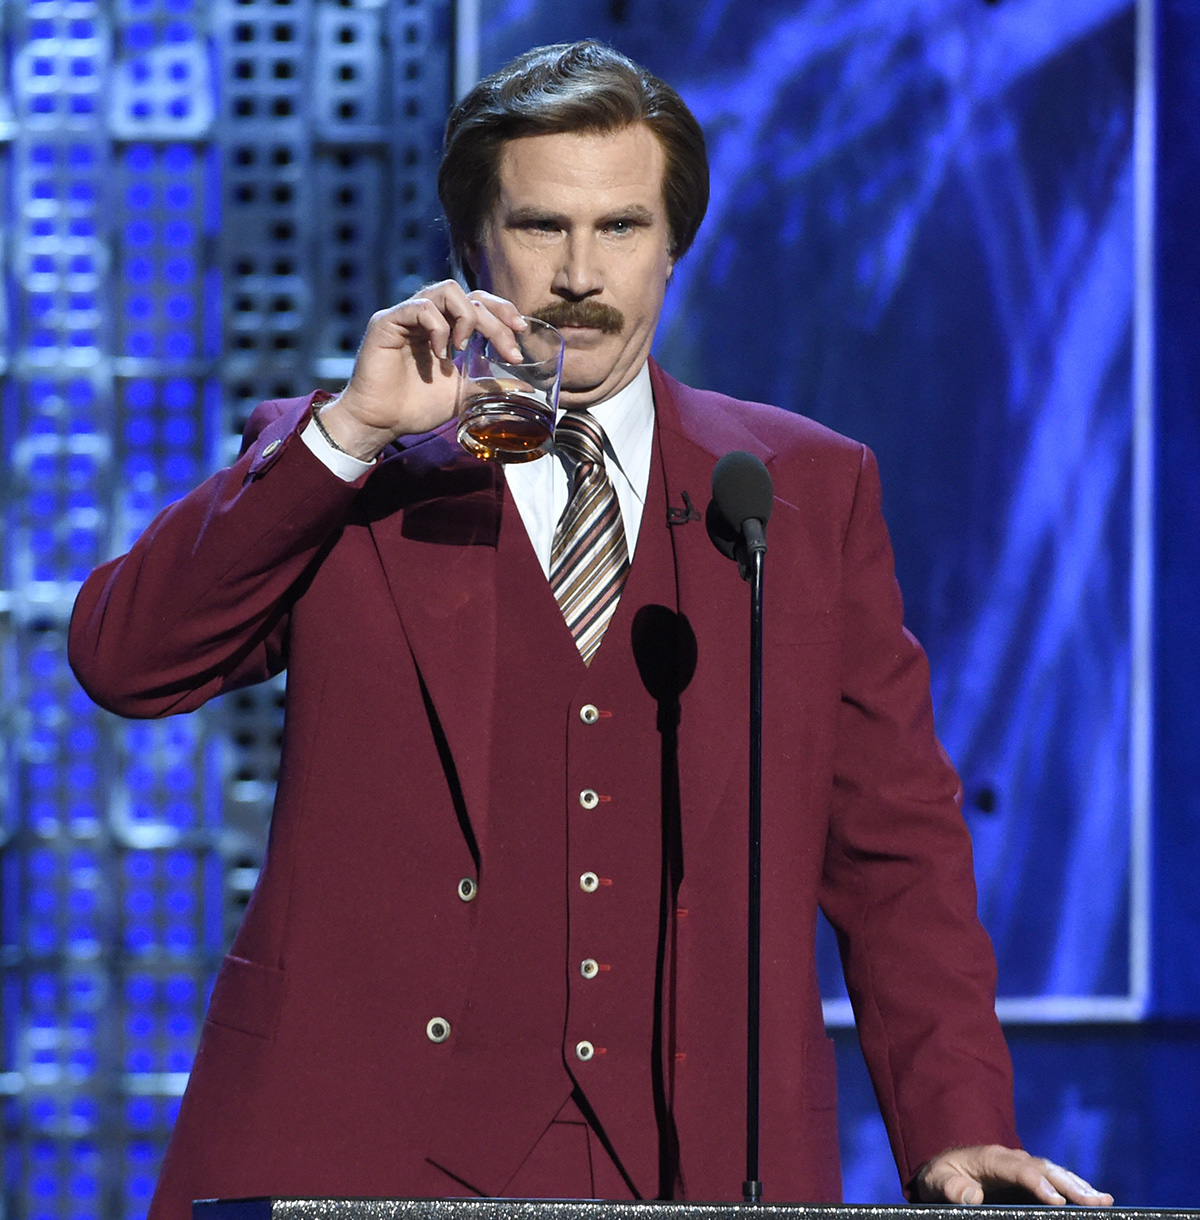 """Will Ferrell appears in character as Ron Burgundy from """"The Anchorman"""" films at the Comedy Central Roast of Justin Bieber at Sony Pictures Studios on Saturday, March 14, 2015, in Culver City, Calif. (Photo by Chris Pizzello/Invision/AP)"""